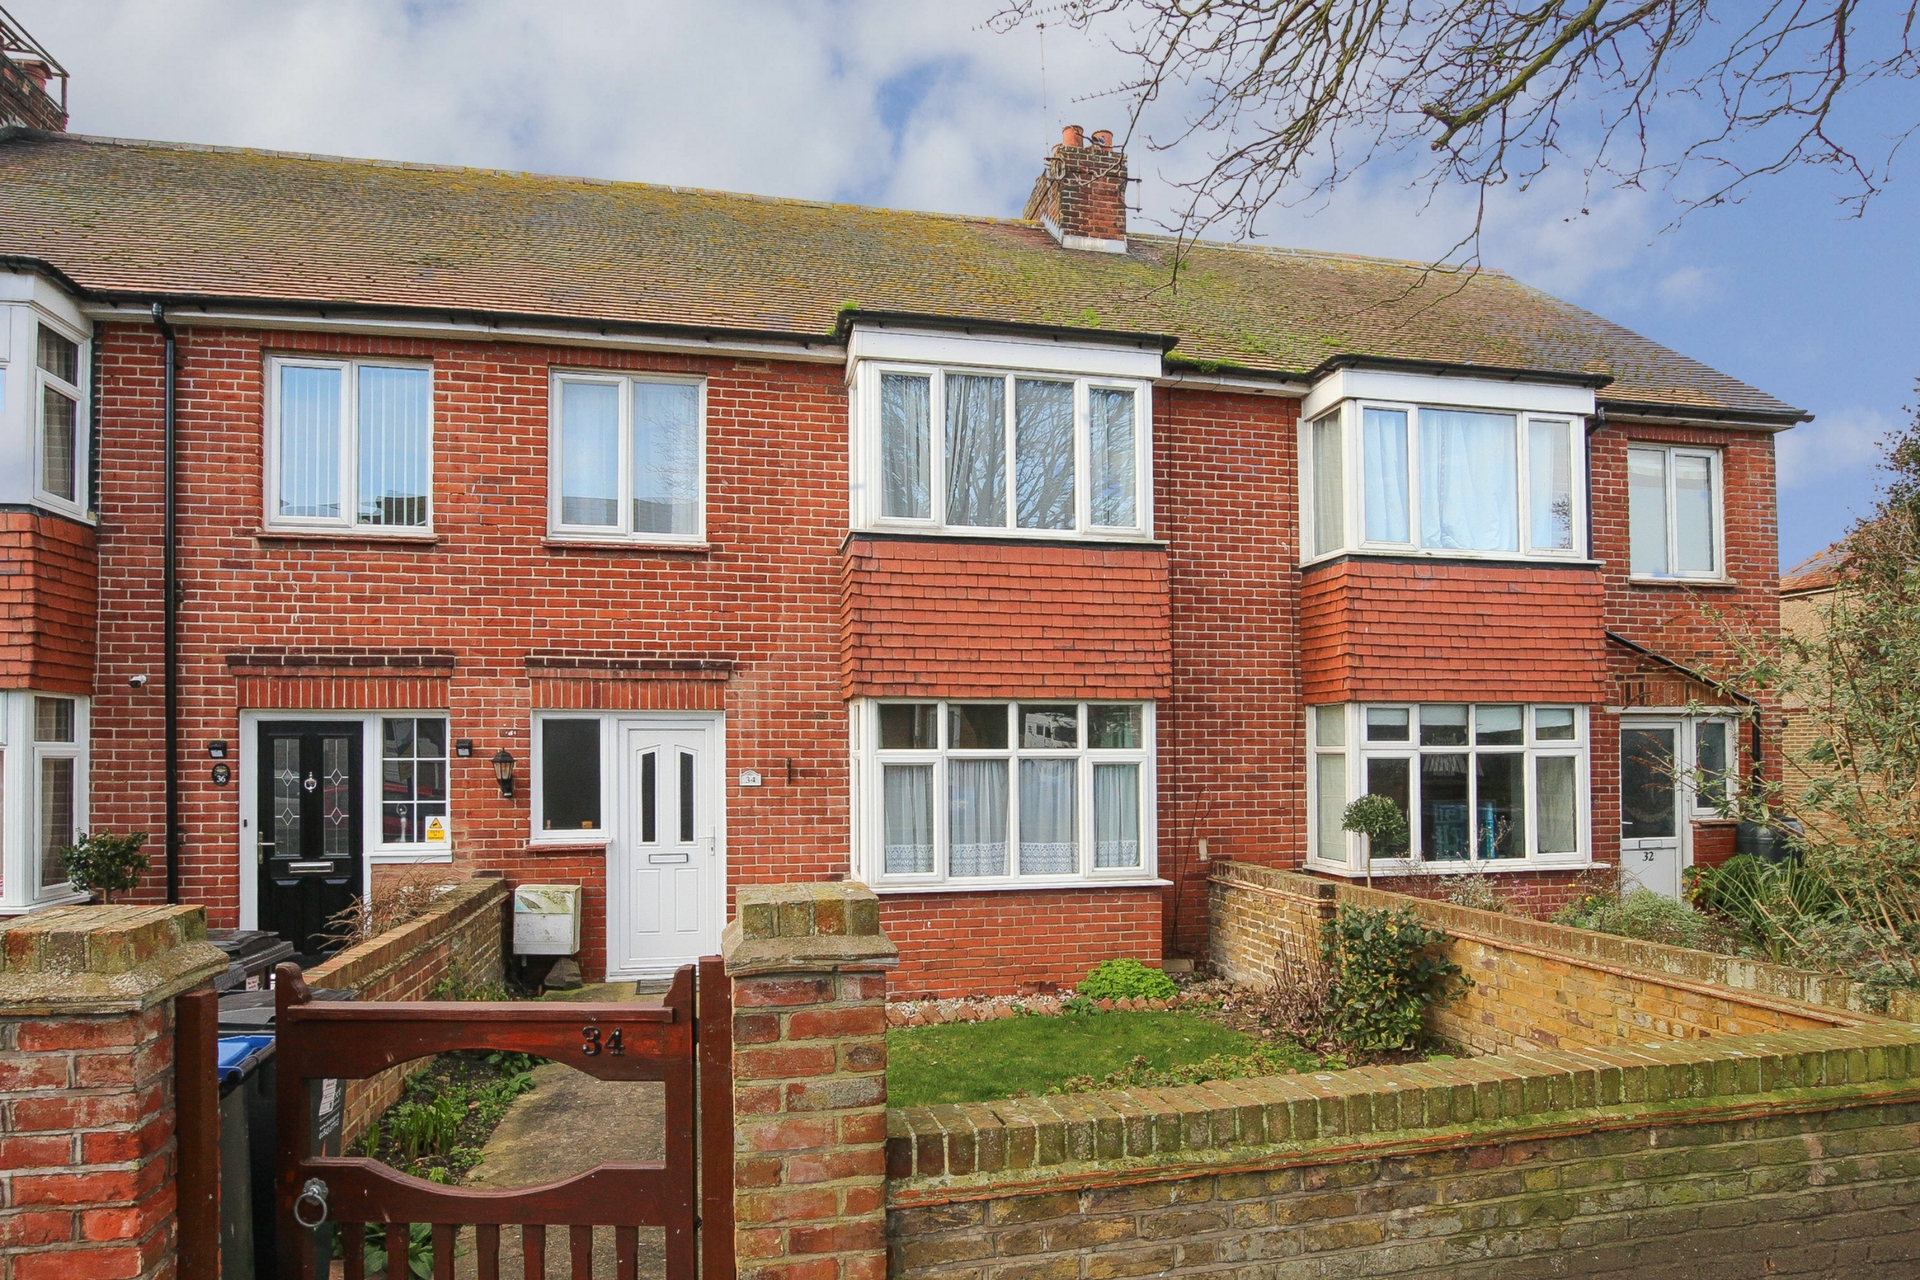 3 bed terraced house for sale in Ethelbert Road, Birchington, CT7